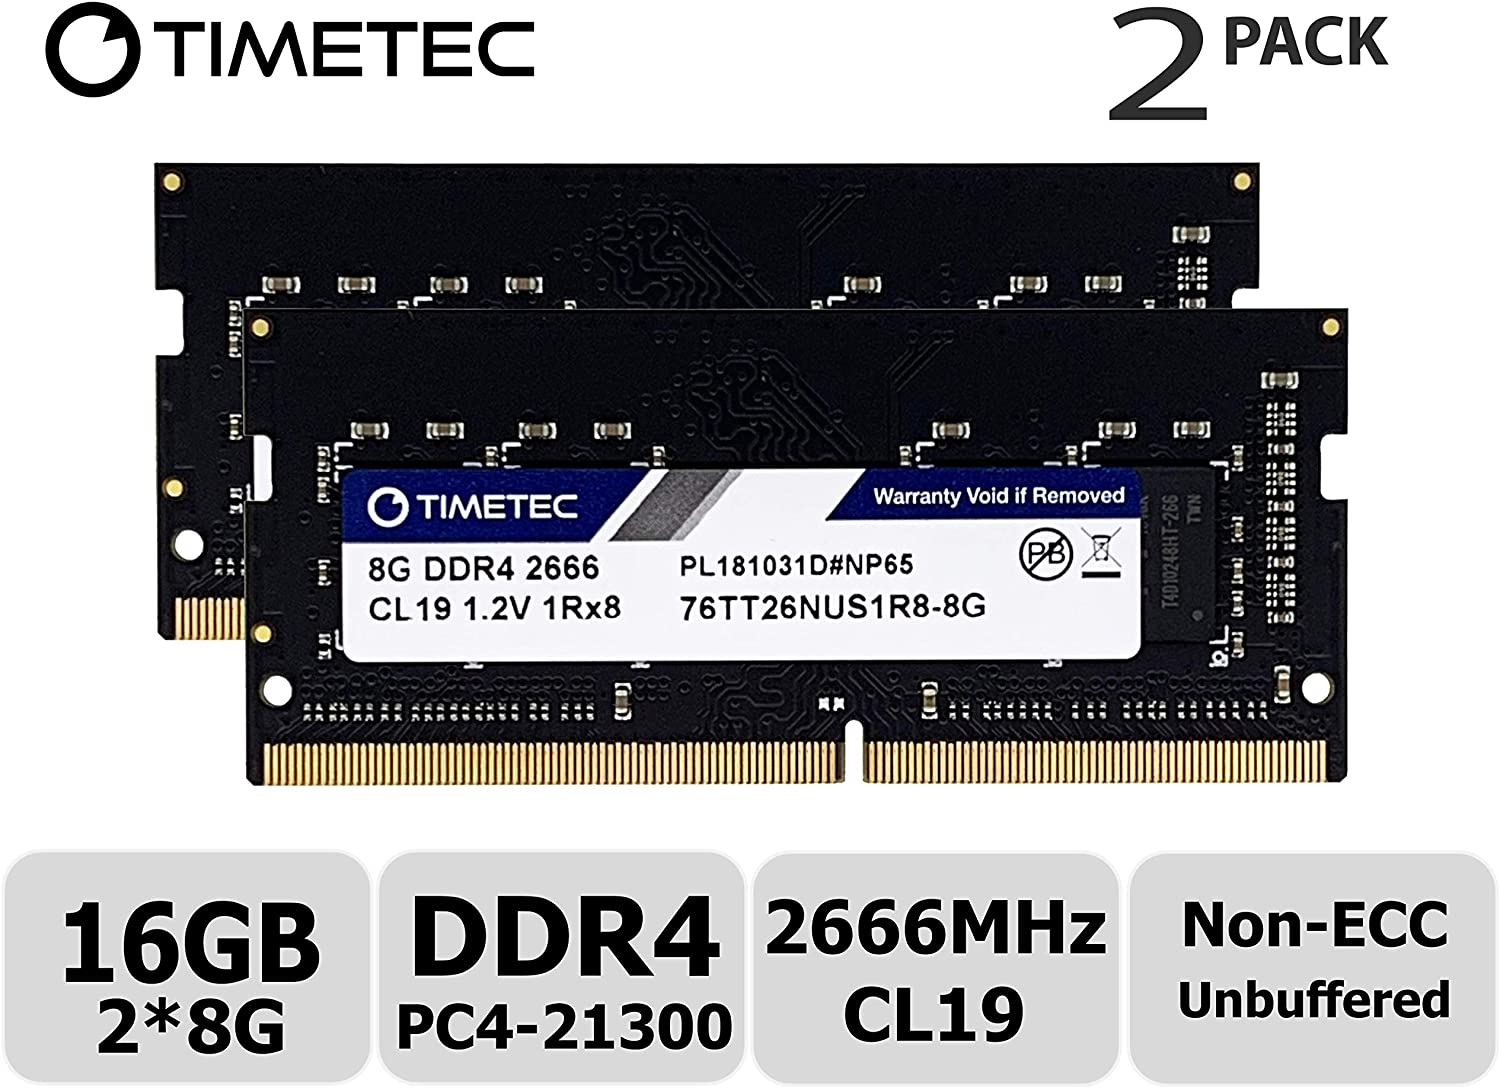 Timetec Hynix IC 16GB KIT (2x8GB) DDR4 2666MHz PC4-21300 Unbuffered Non-ECC 1.2V CL19 1Rx8 Single Rank 260 Pin SODIMM Laptop Notebook Computer Memory RAM Module Upgrade (16GB KIT (2x8GB))